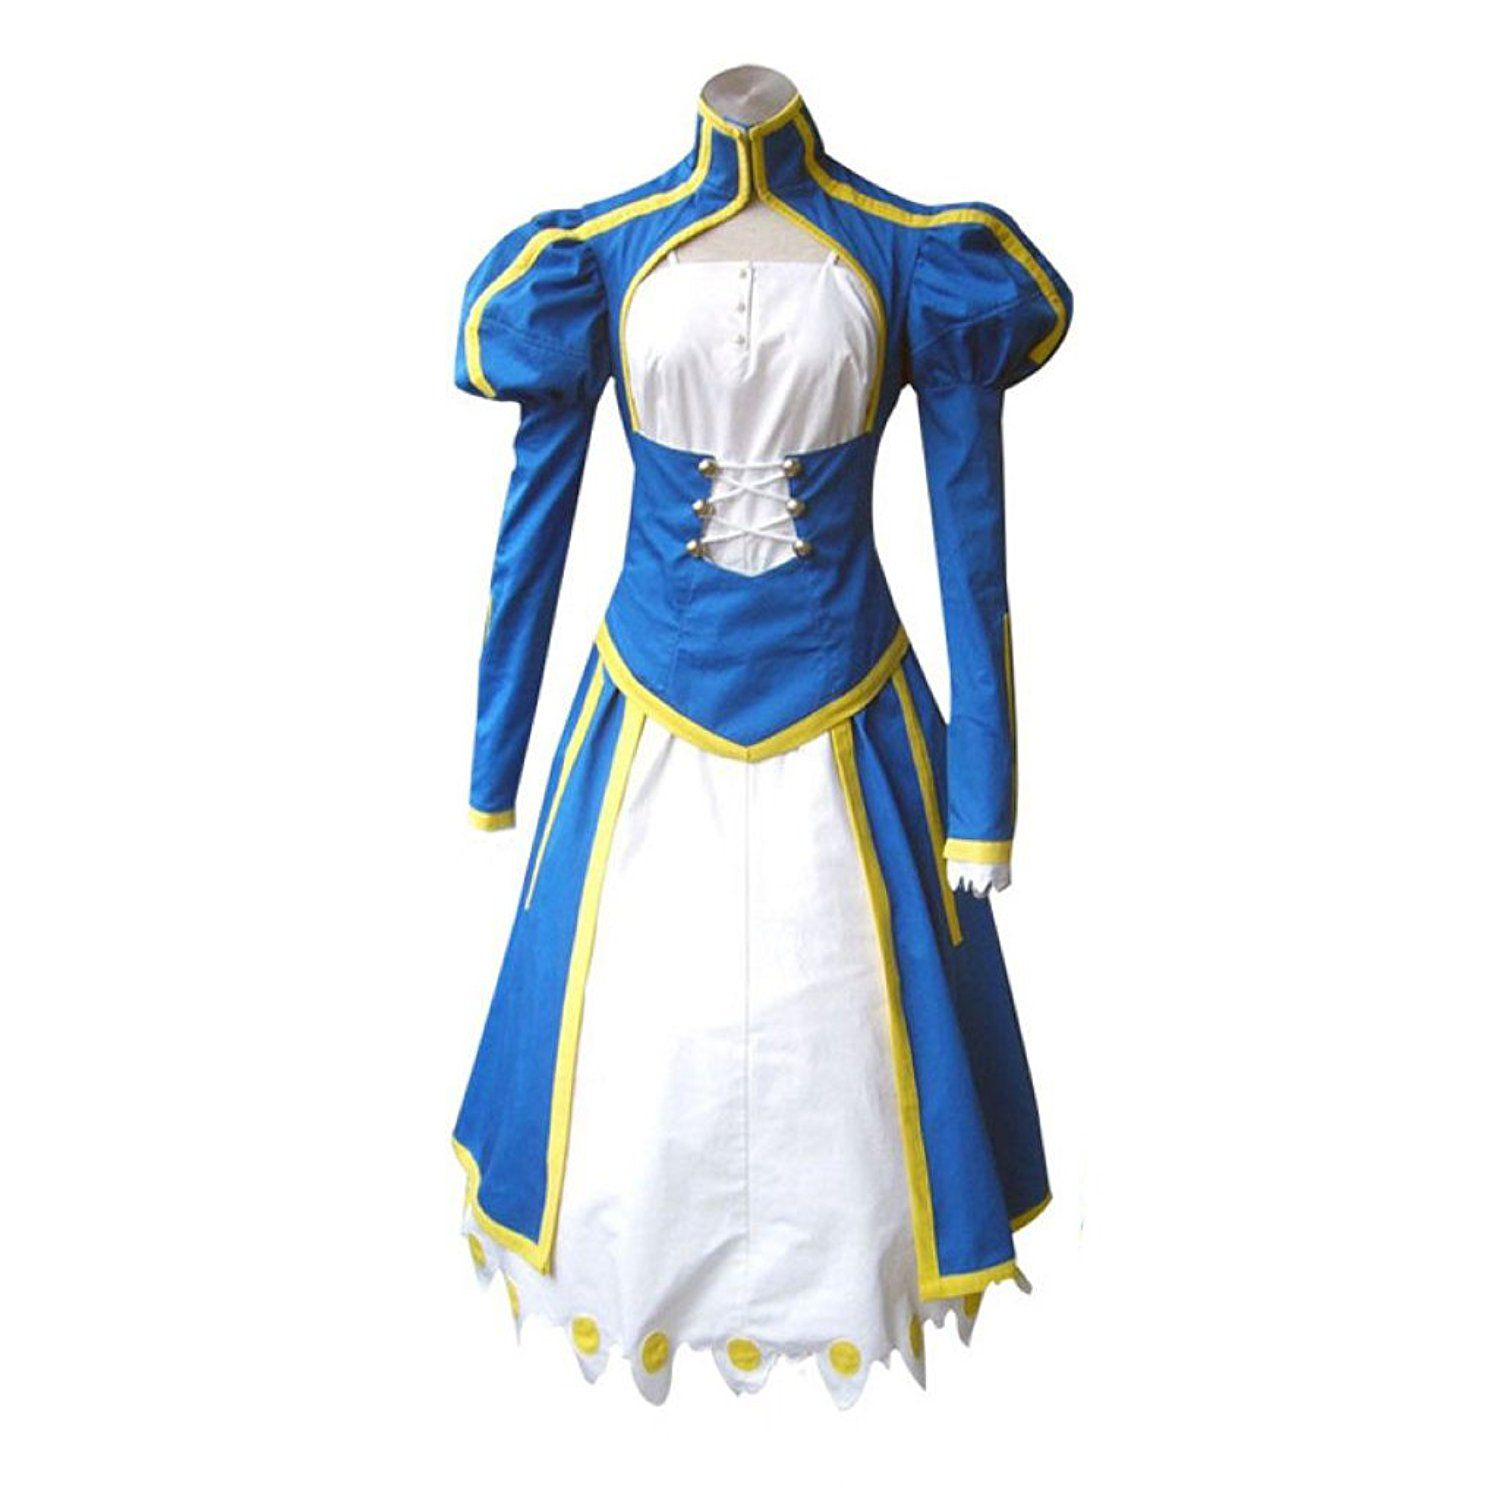 Fate Stay Night Cosplay Costume Blue Saber Swordsman